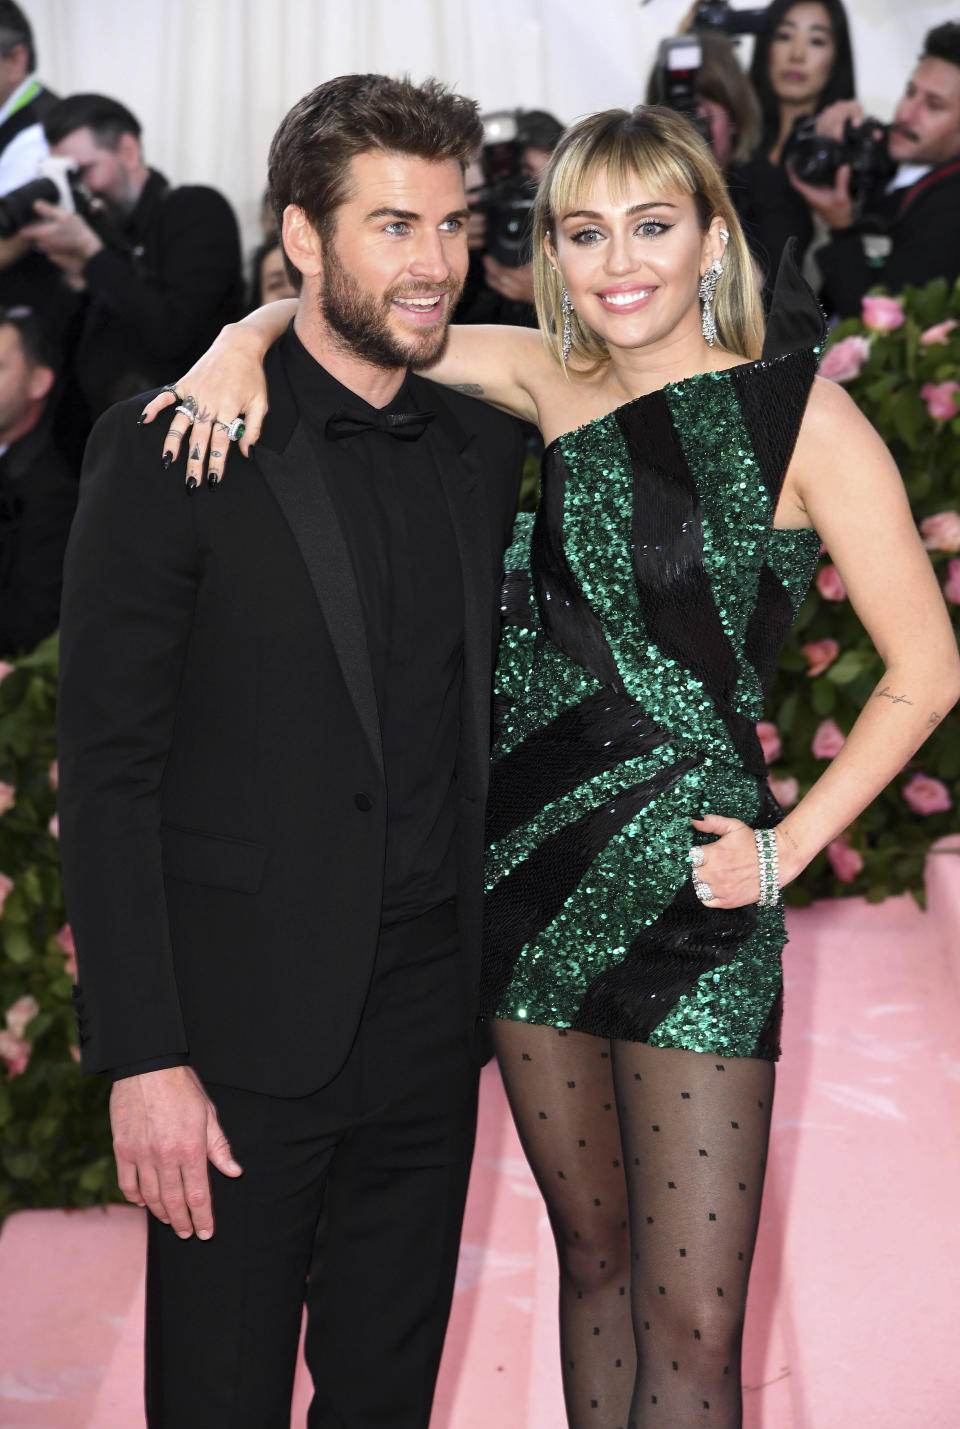 "Photo by: Doug Peters/STAR MAX/IPx 2019 8/10/19 Miley Cyrus and Liam Hemsworth split after less than a year of marriage. STAR MAX File Photo: 5/6/19 Liam Hemsworth and Miley Cyrus at the 2019 Costume Institute Benefit Gala celebrating the opening of ""Camp: Notes on Fashion"". (The Metropolitan Museum of Art, NYC)"